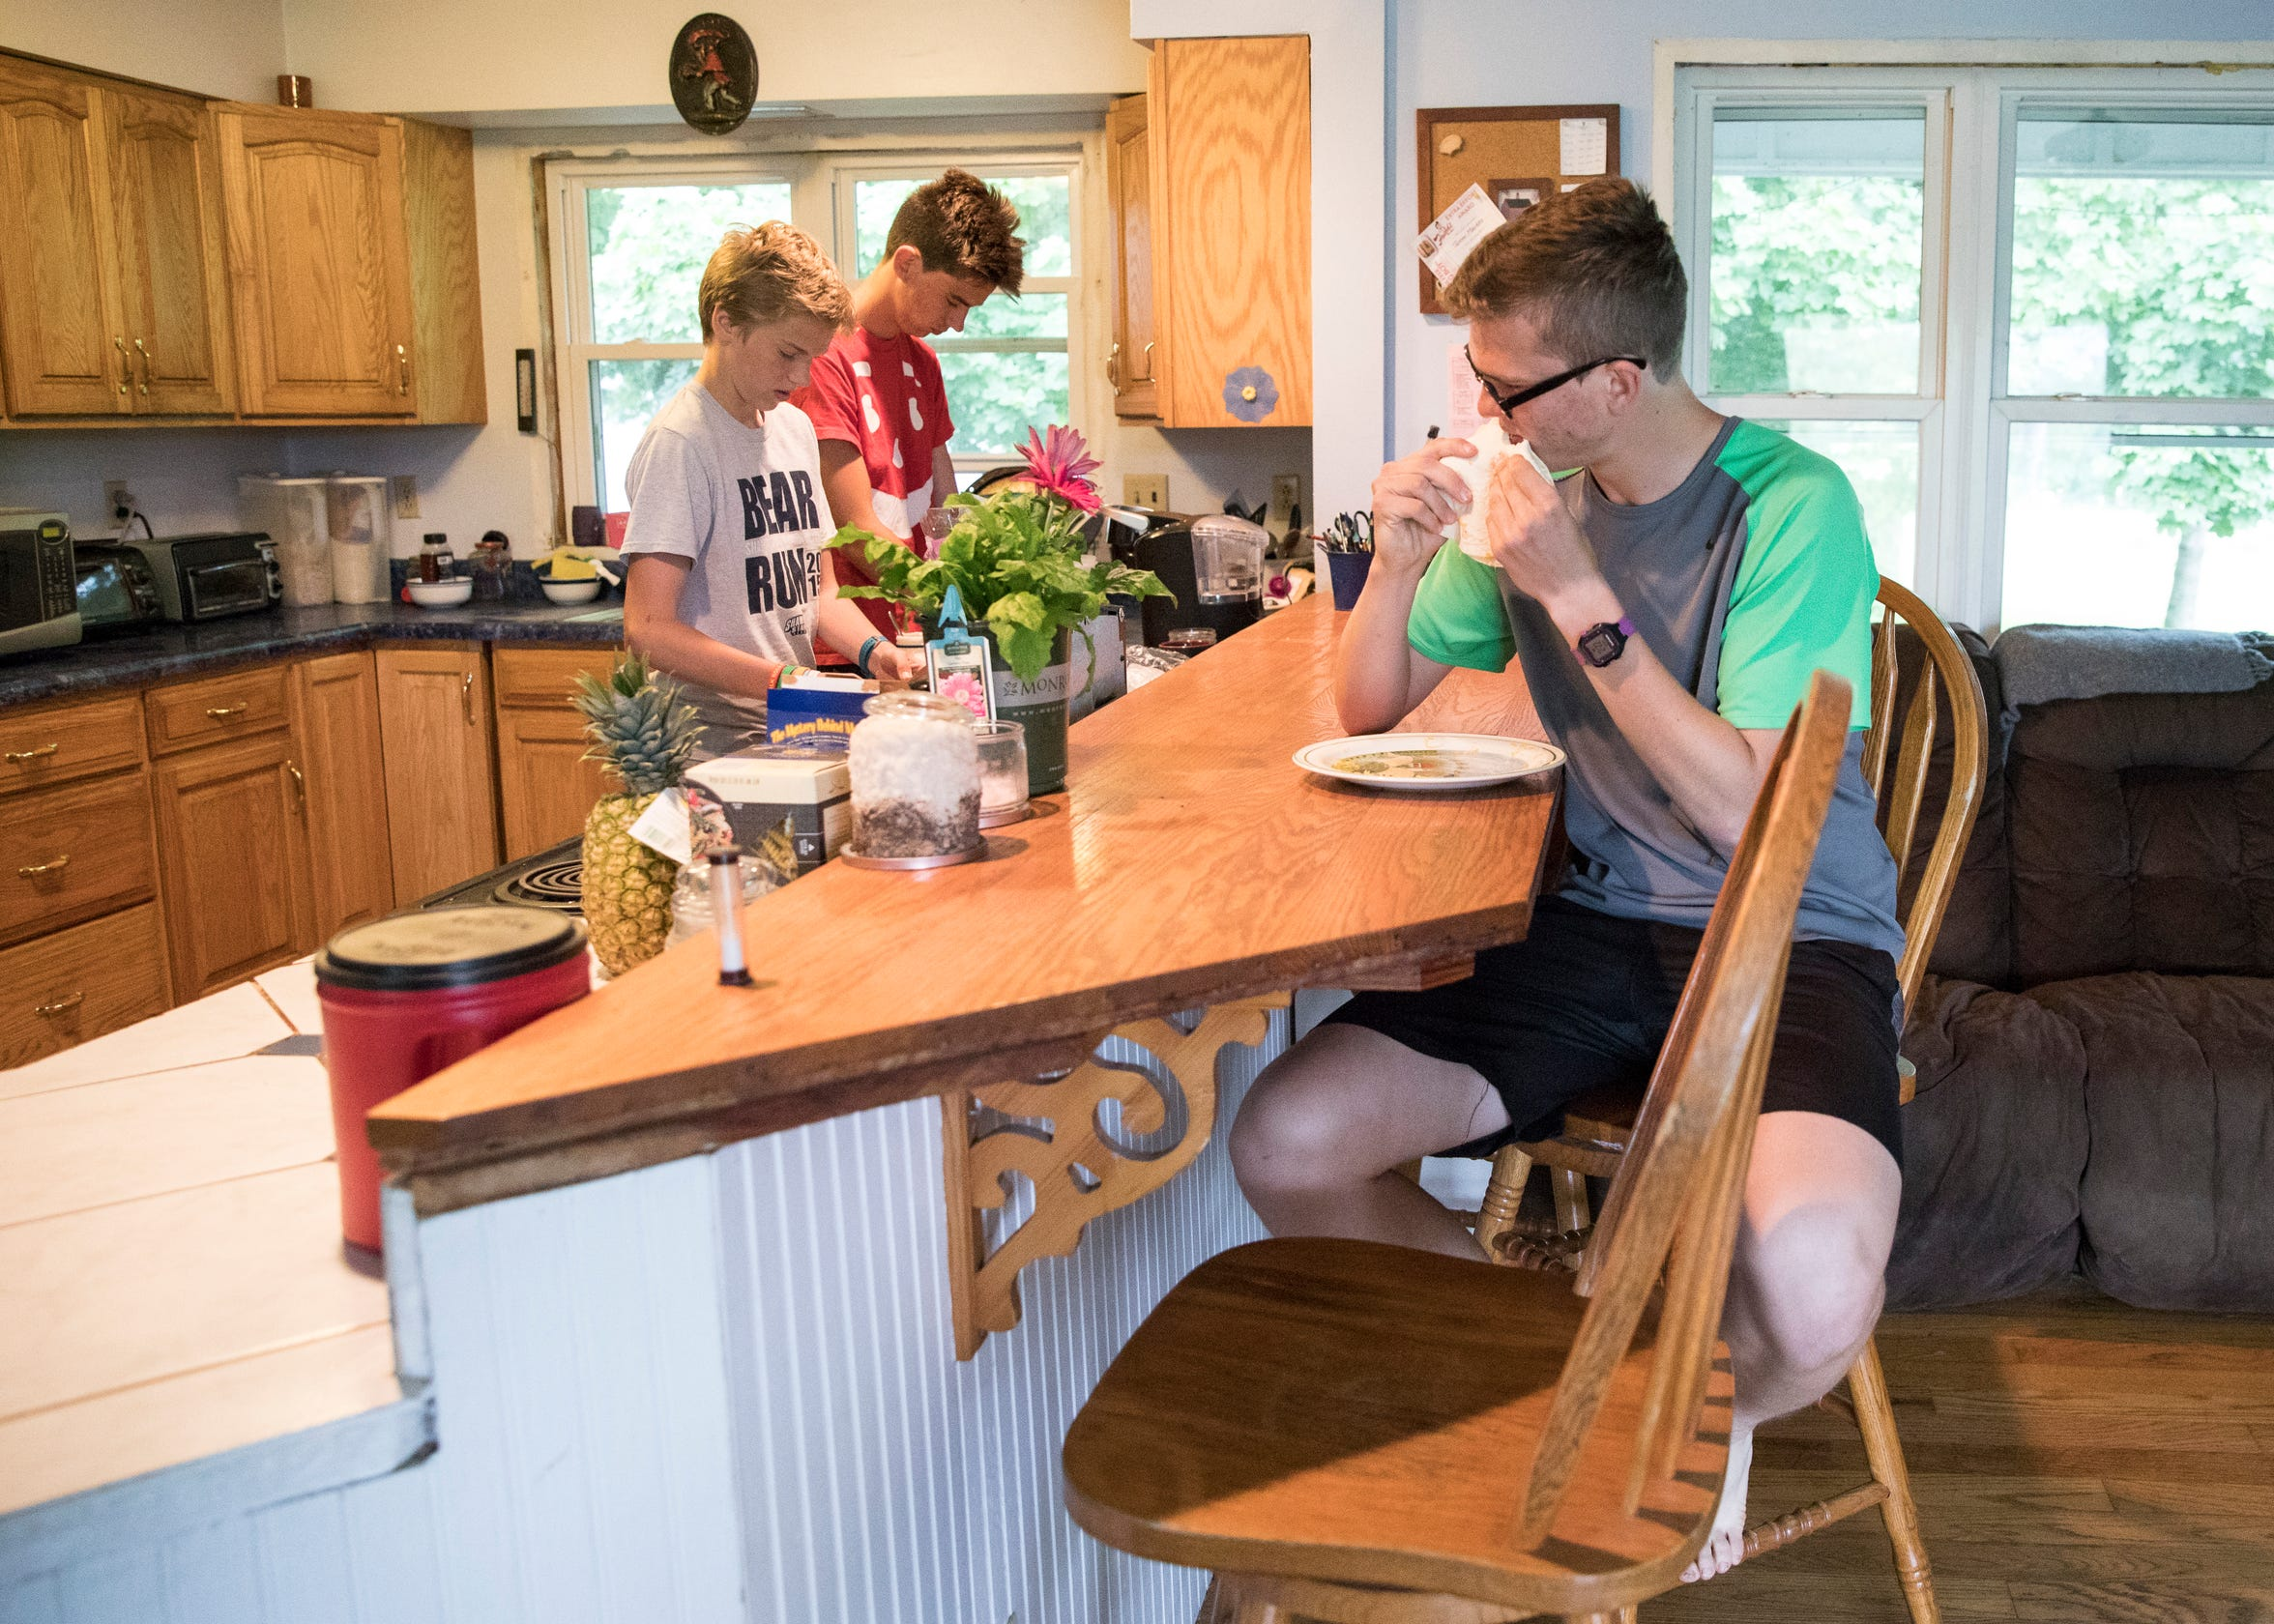 Tucker Markko fixes something to eat with his brothers Cater and Turner before they go out on a Sunday afternoon run in South Salem, Ohio.